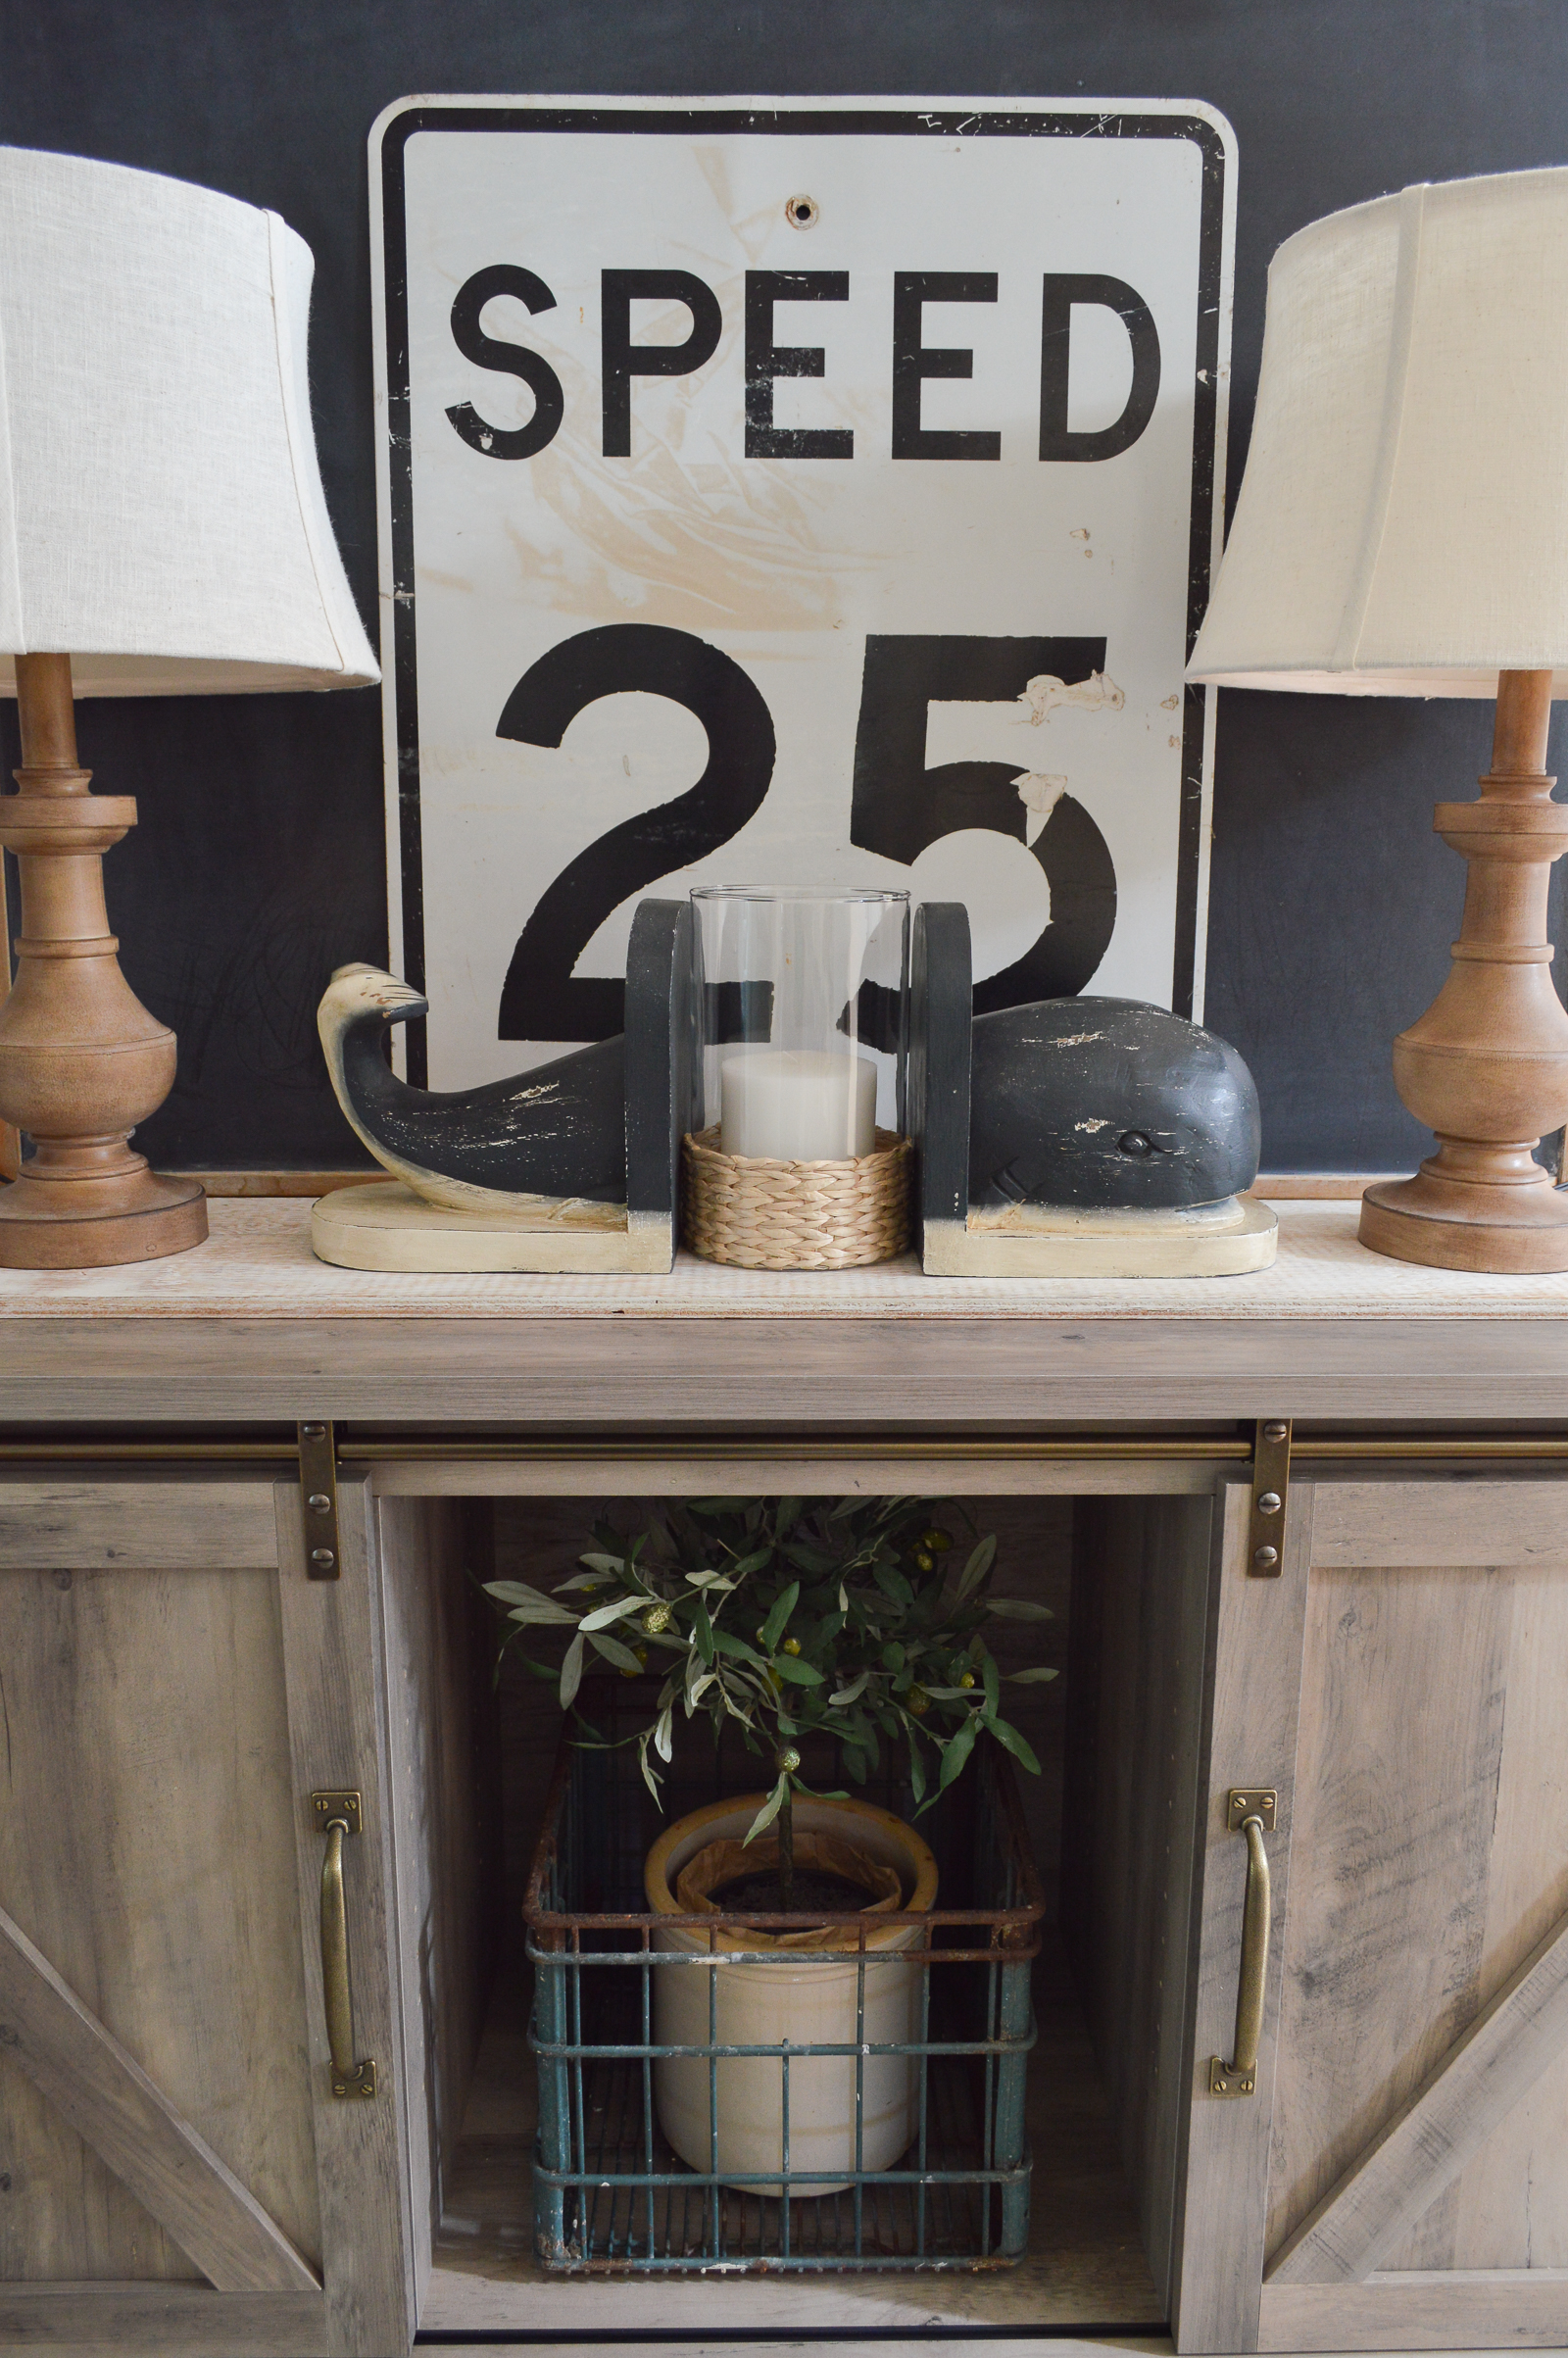 Hidden Storage With Style Cottage Farmhouse Entryway - vintage 25 MPH speed sign